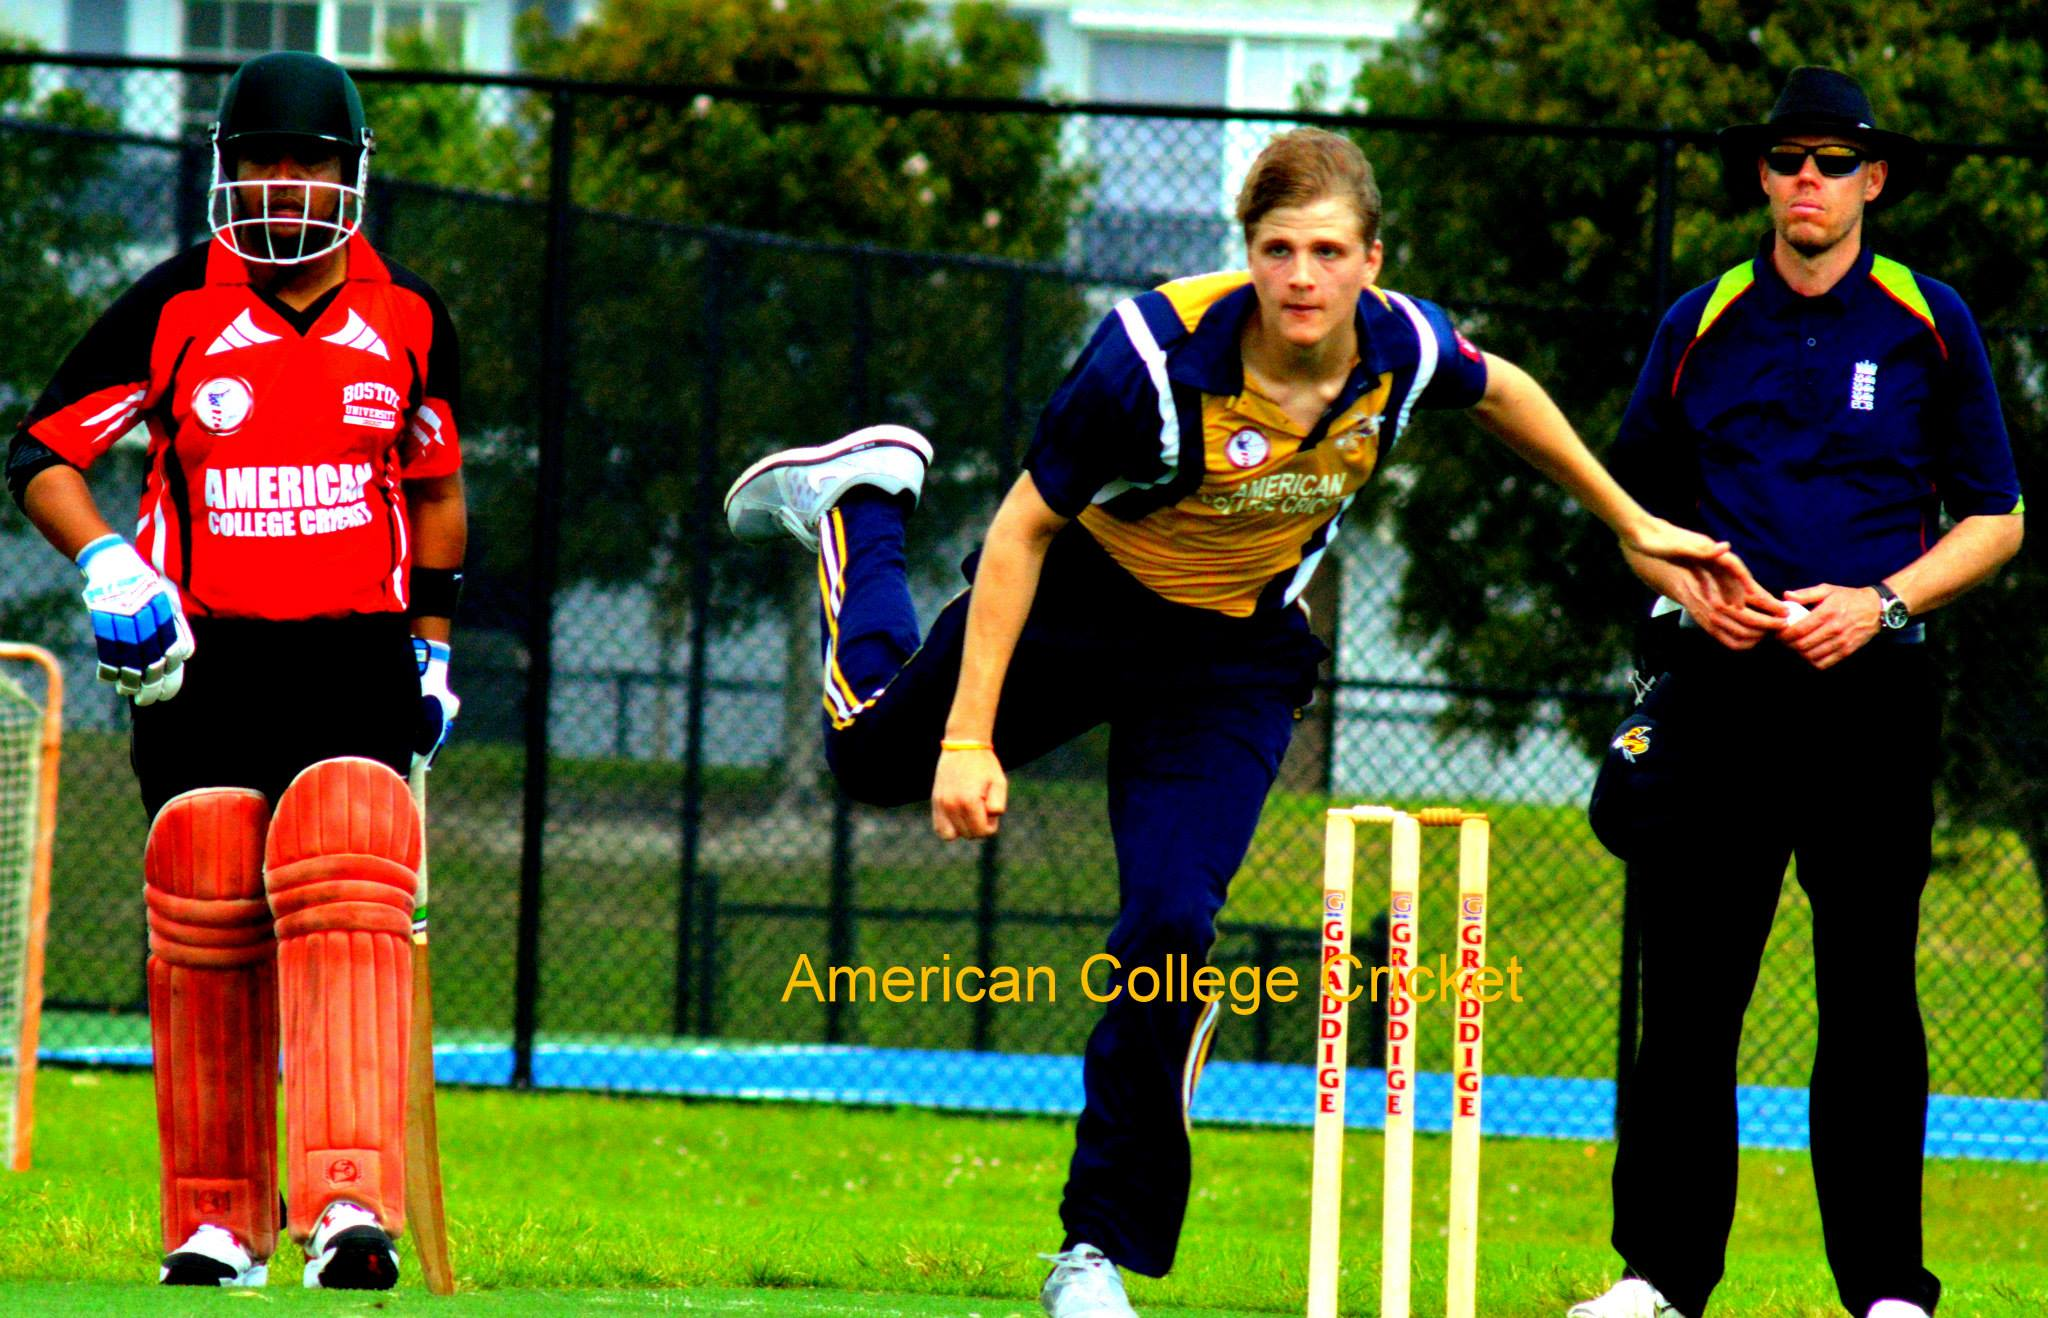 Ecb Umpire Billy Taylor Returns For His 5th American College